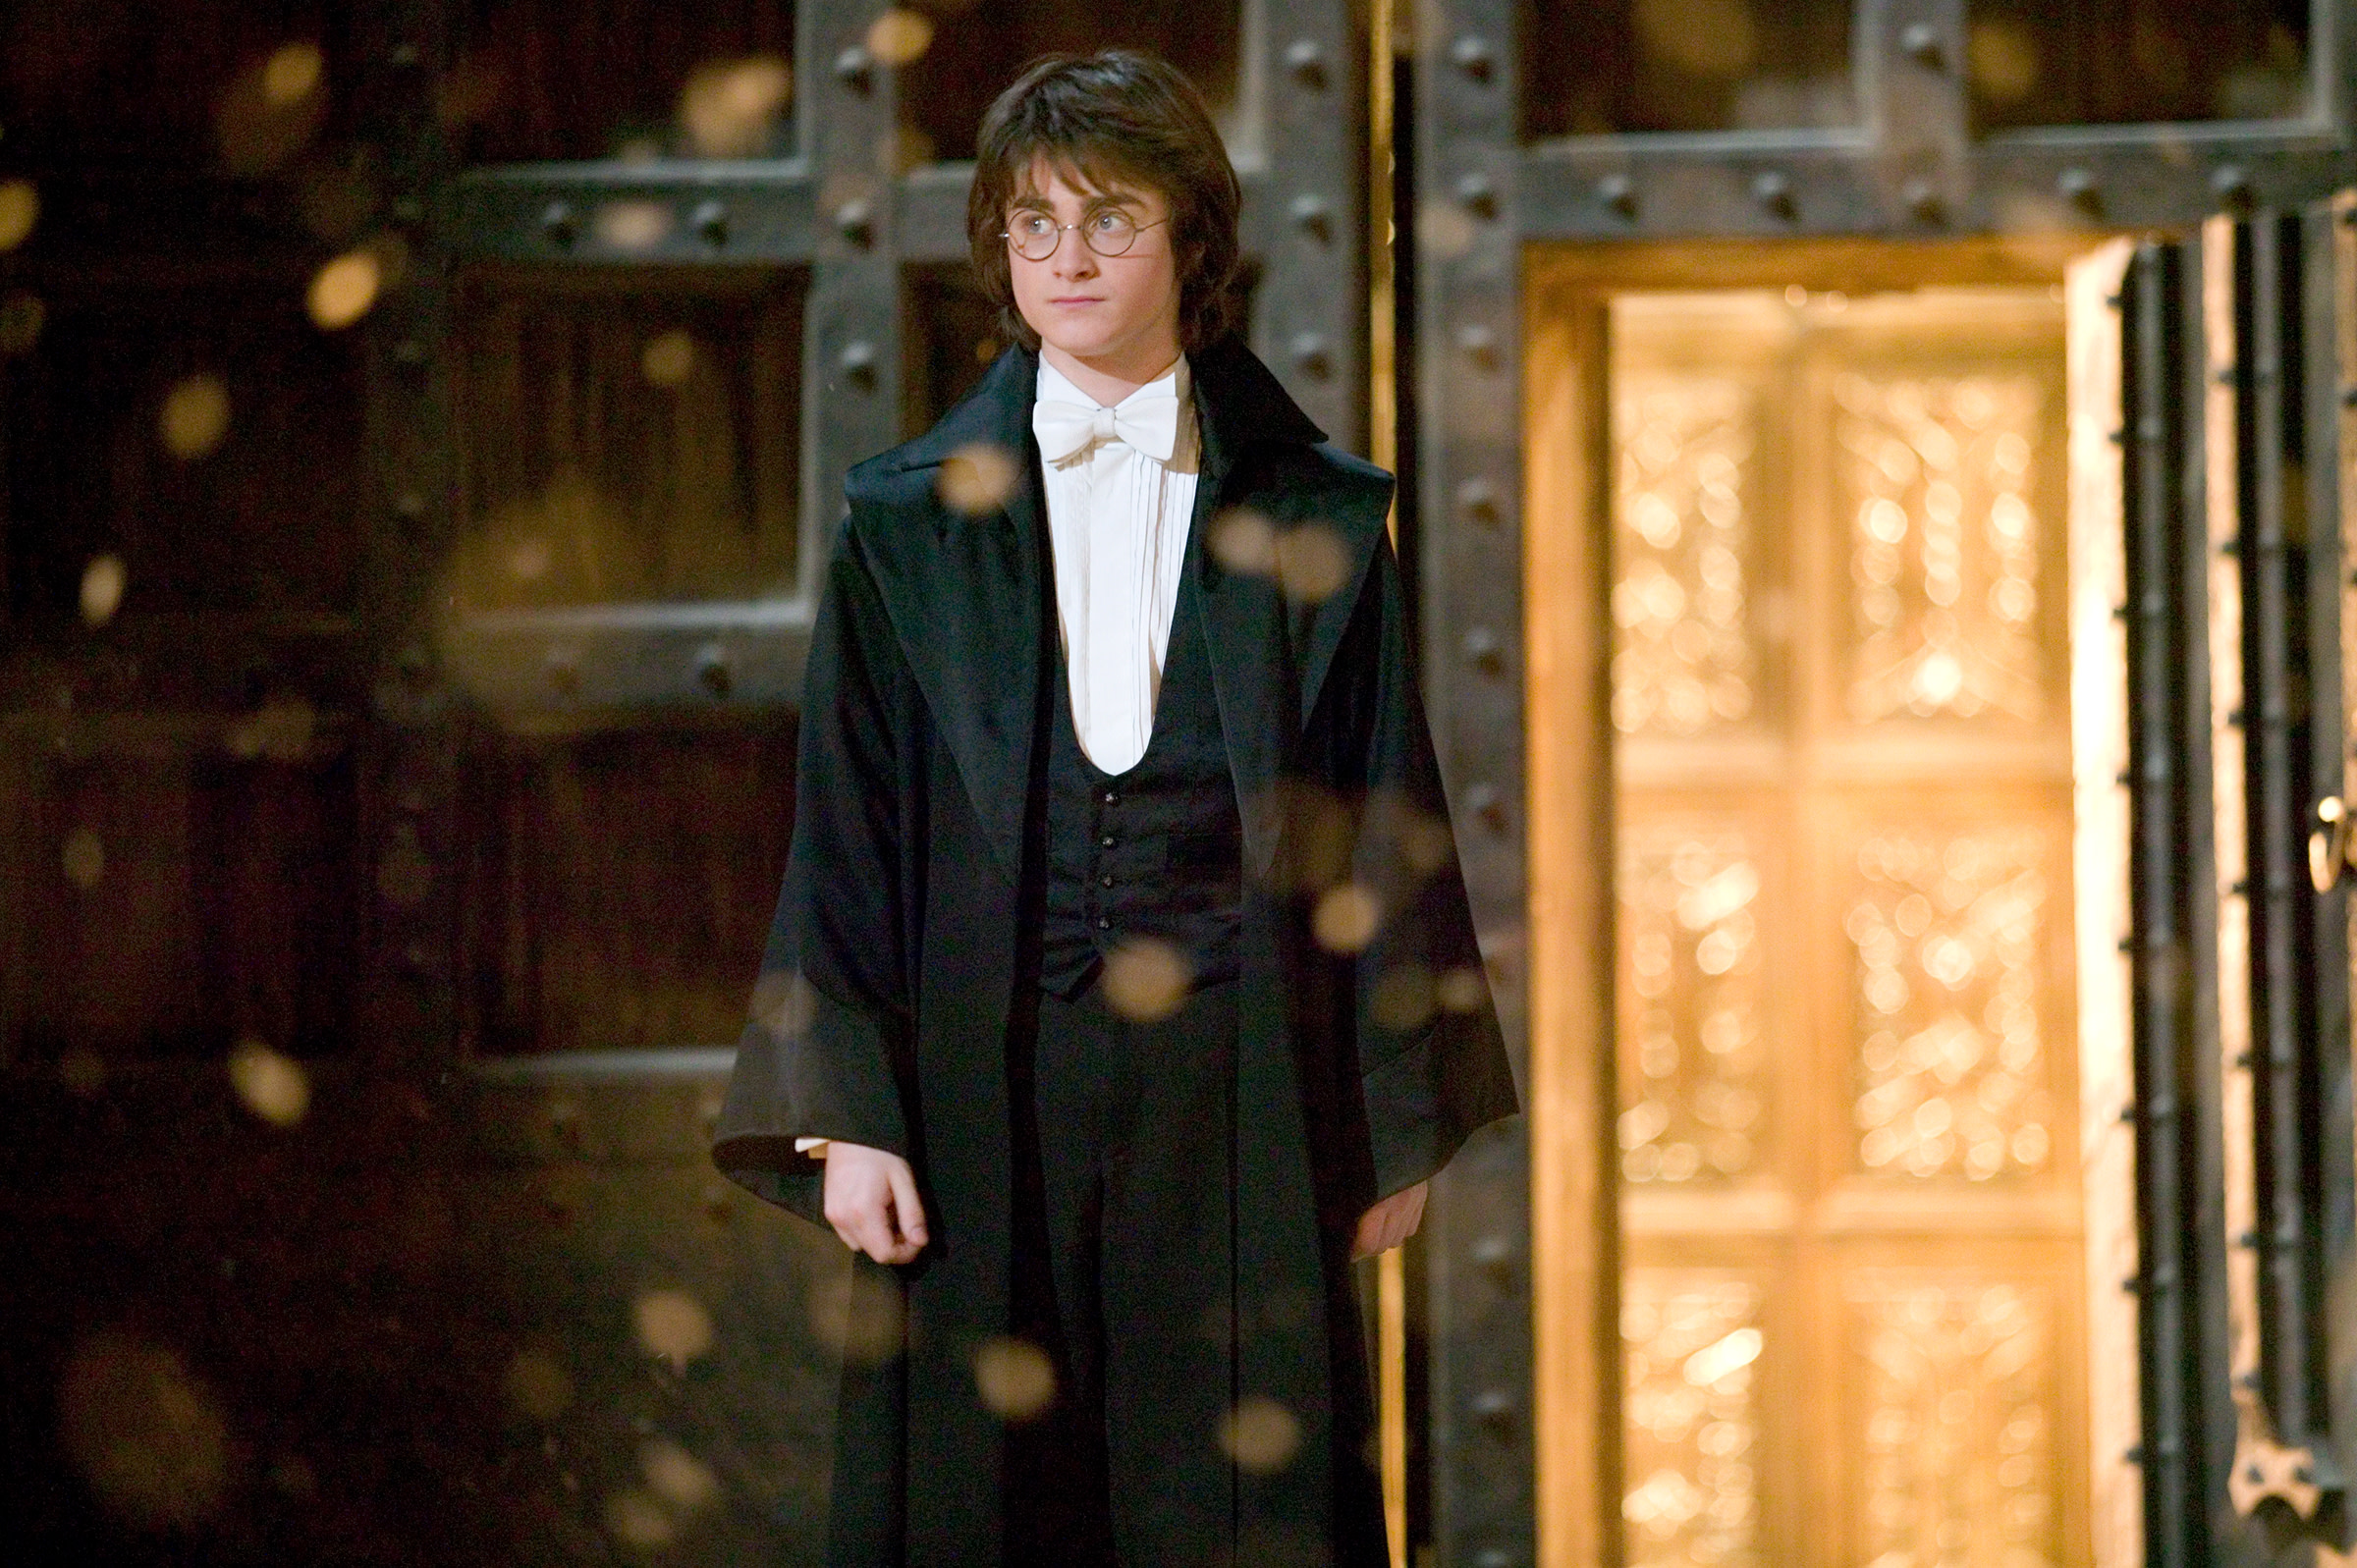 WB-F4-goblet-of-fire-harry-at-yule-ball-in-dress-robes